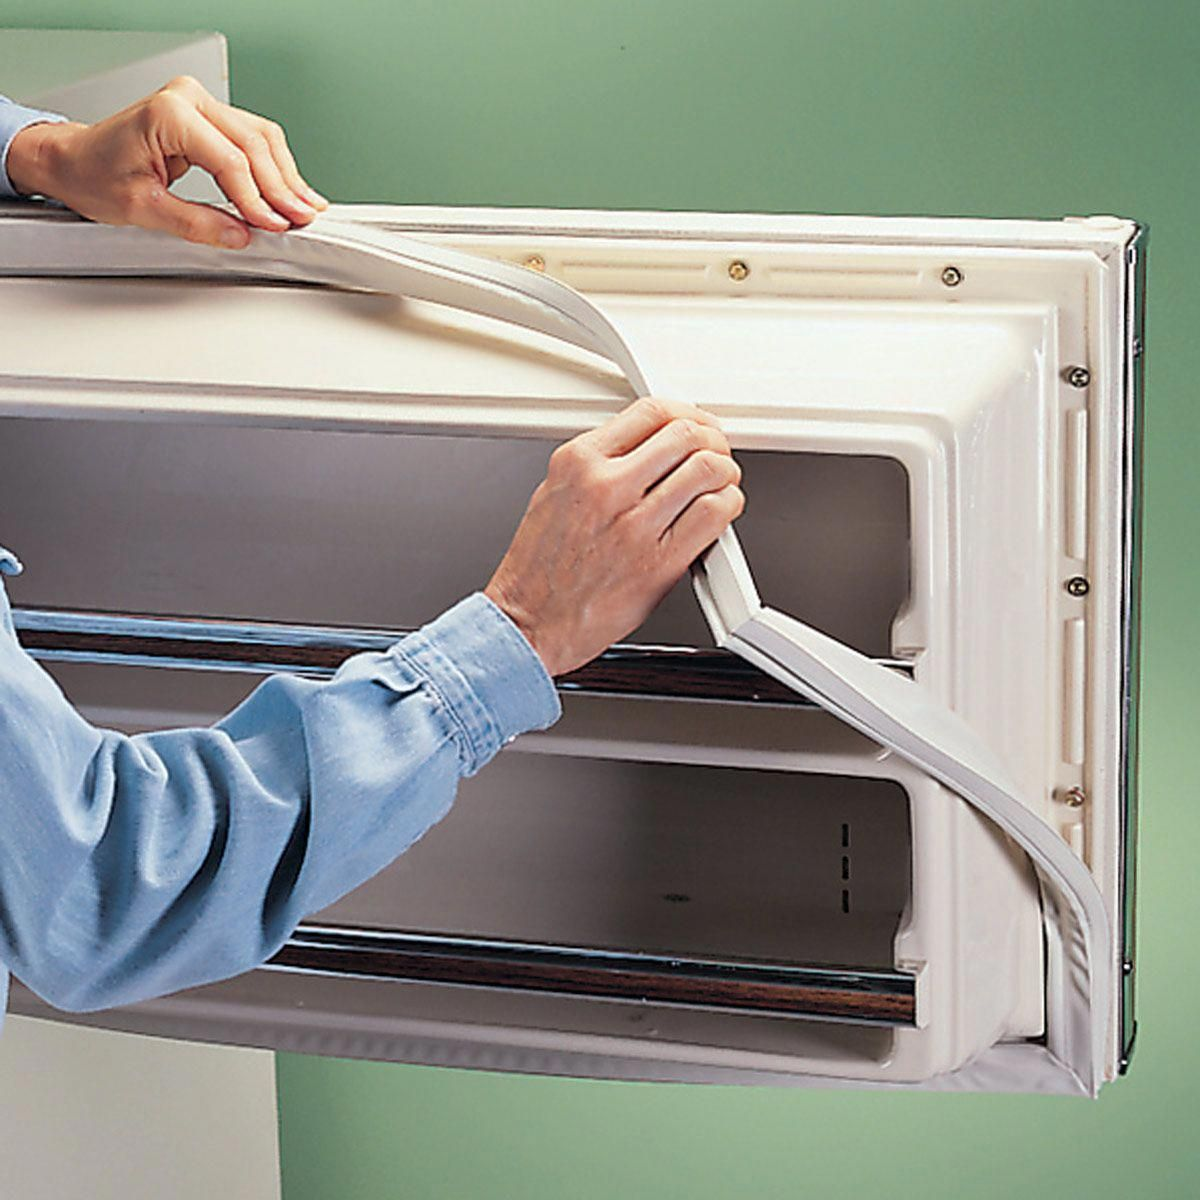 3 Tips On How To Replace A Refrigerator Door Gasket Homerenovationideas